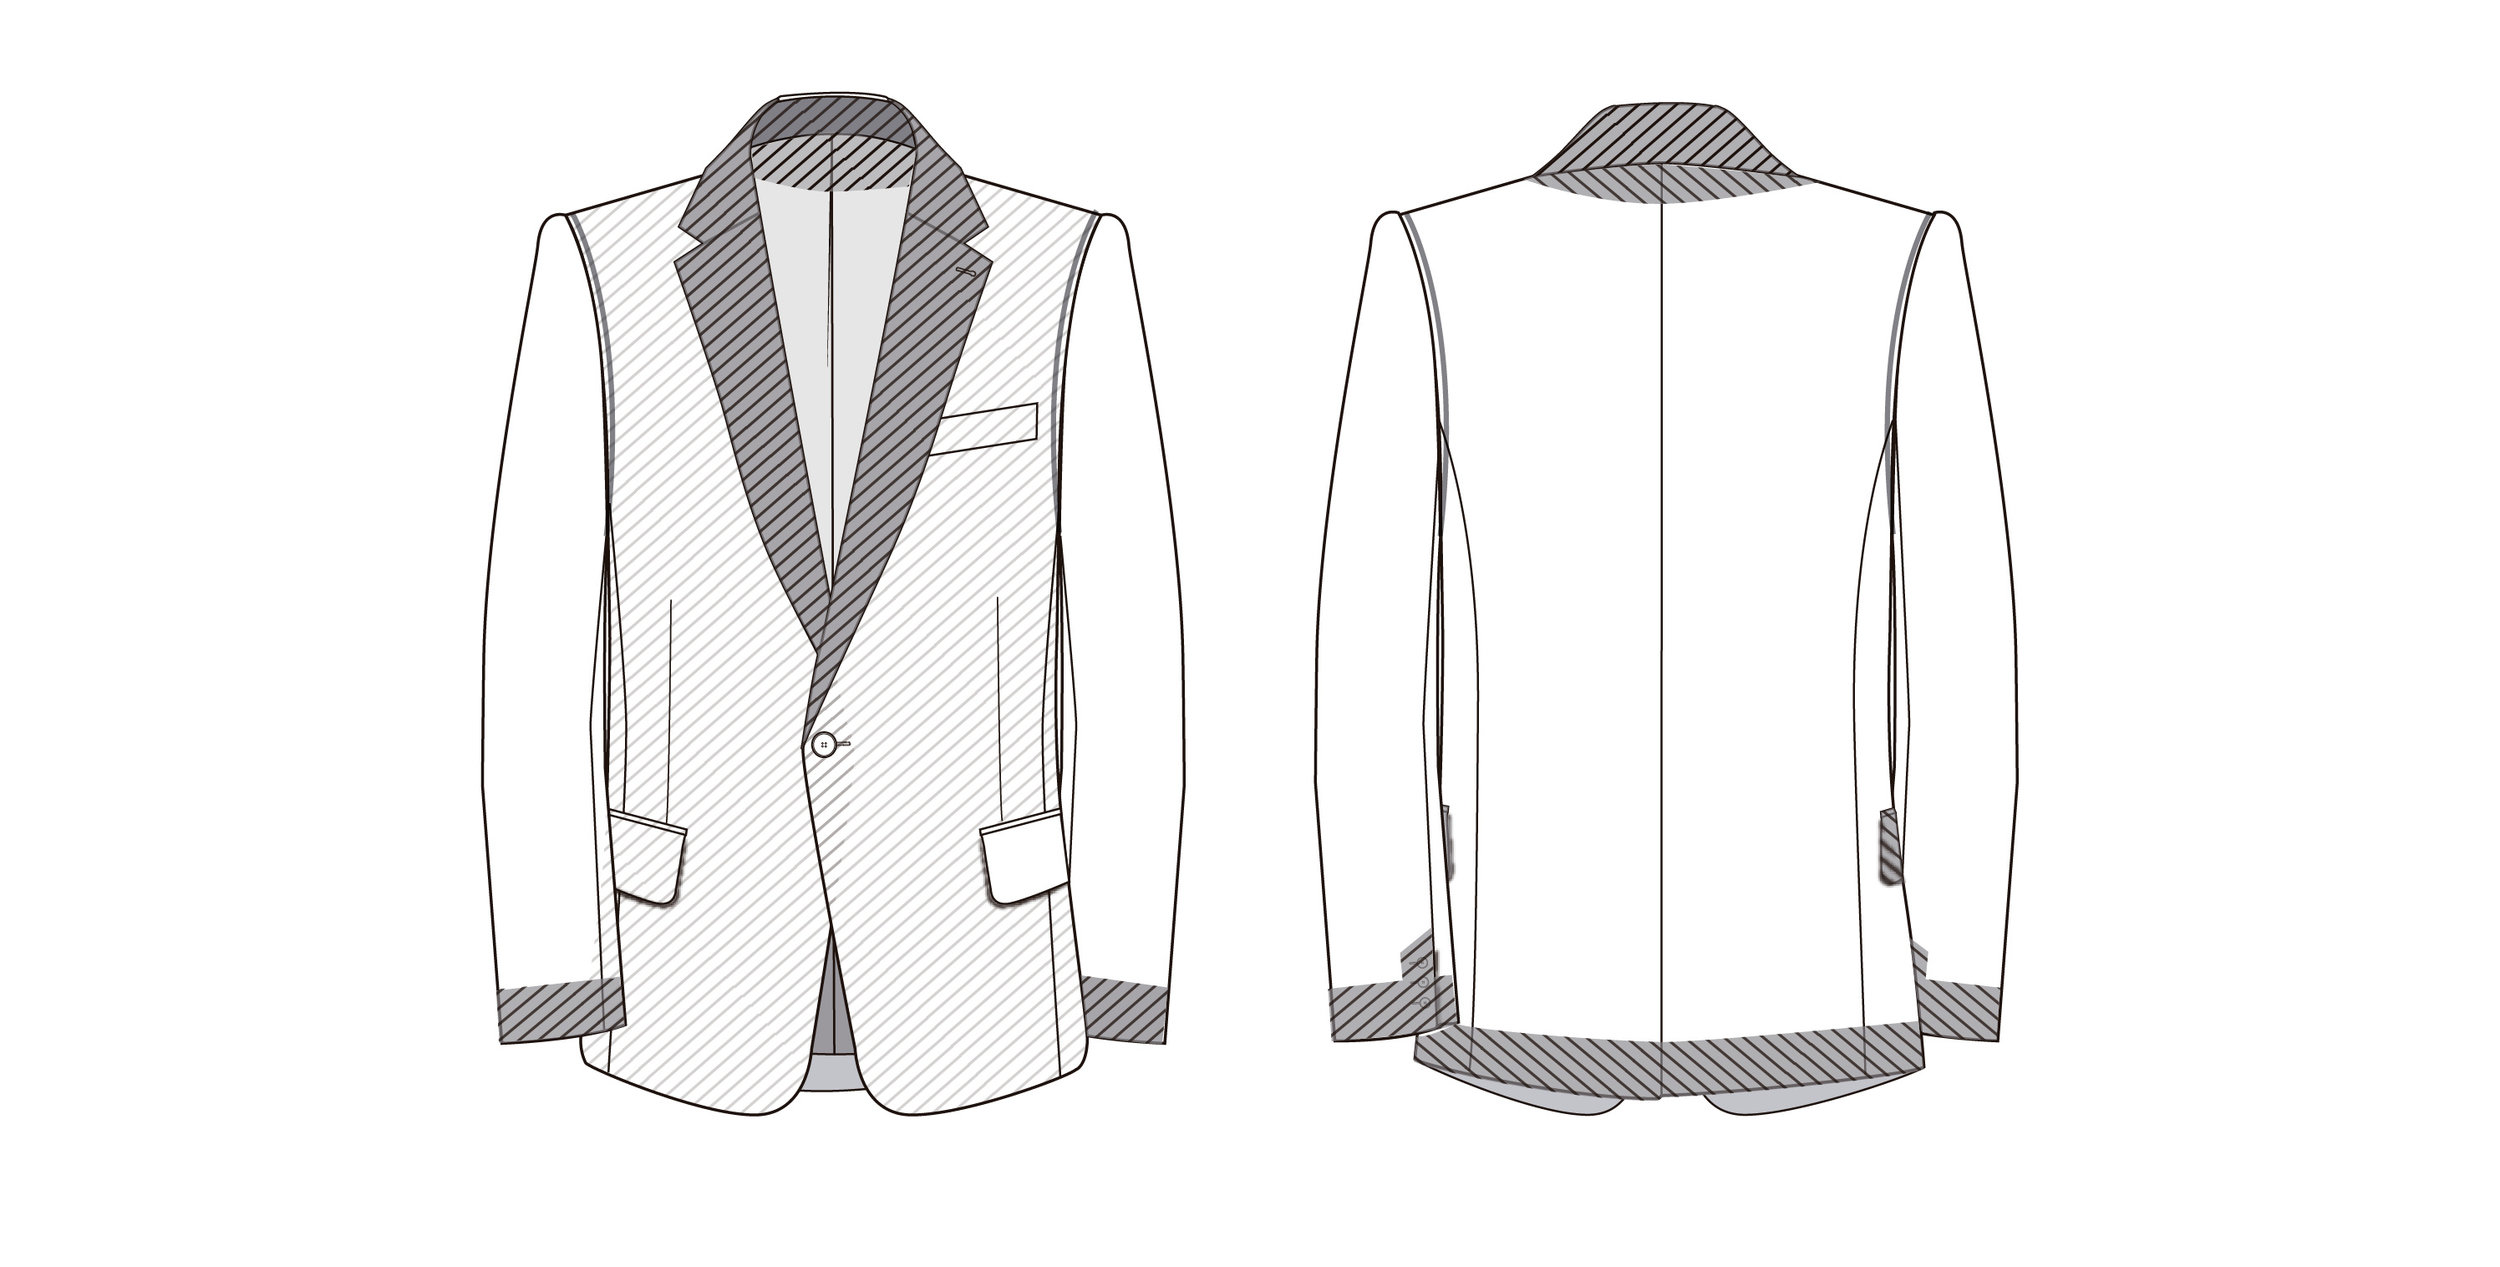 Interfacing placement on a tailored jacket